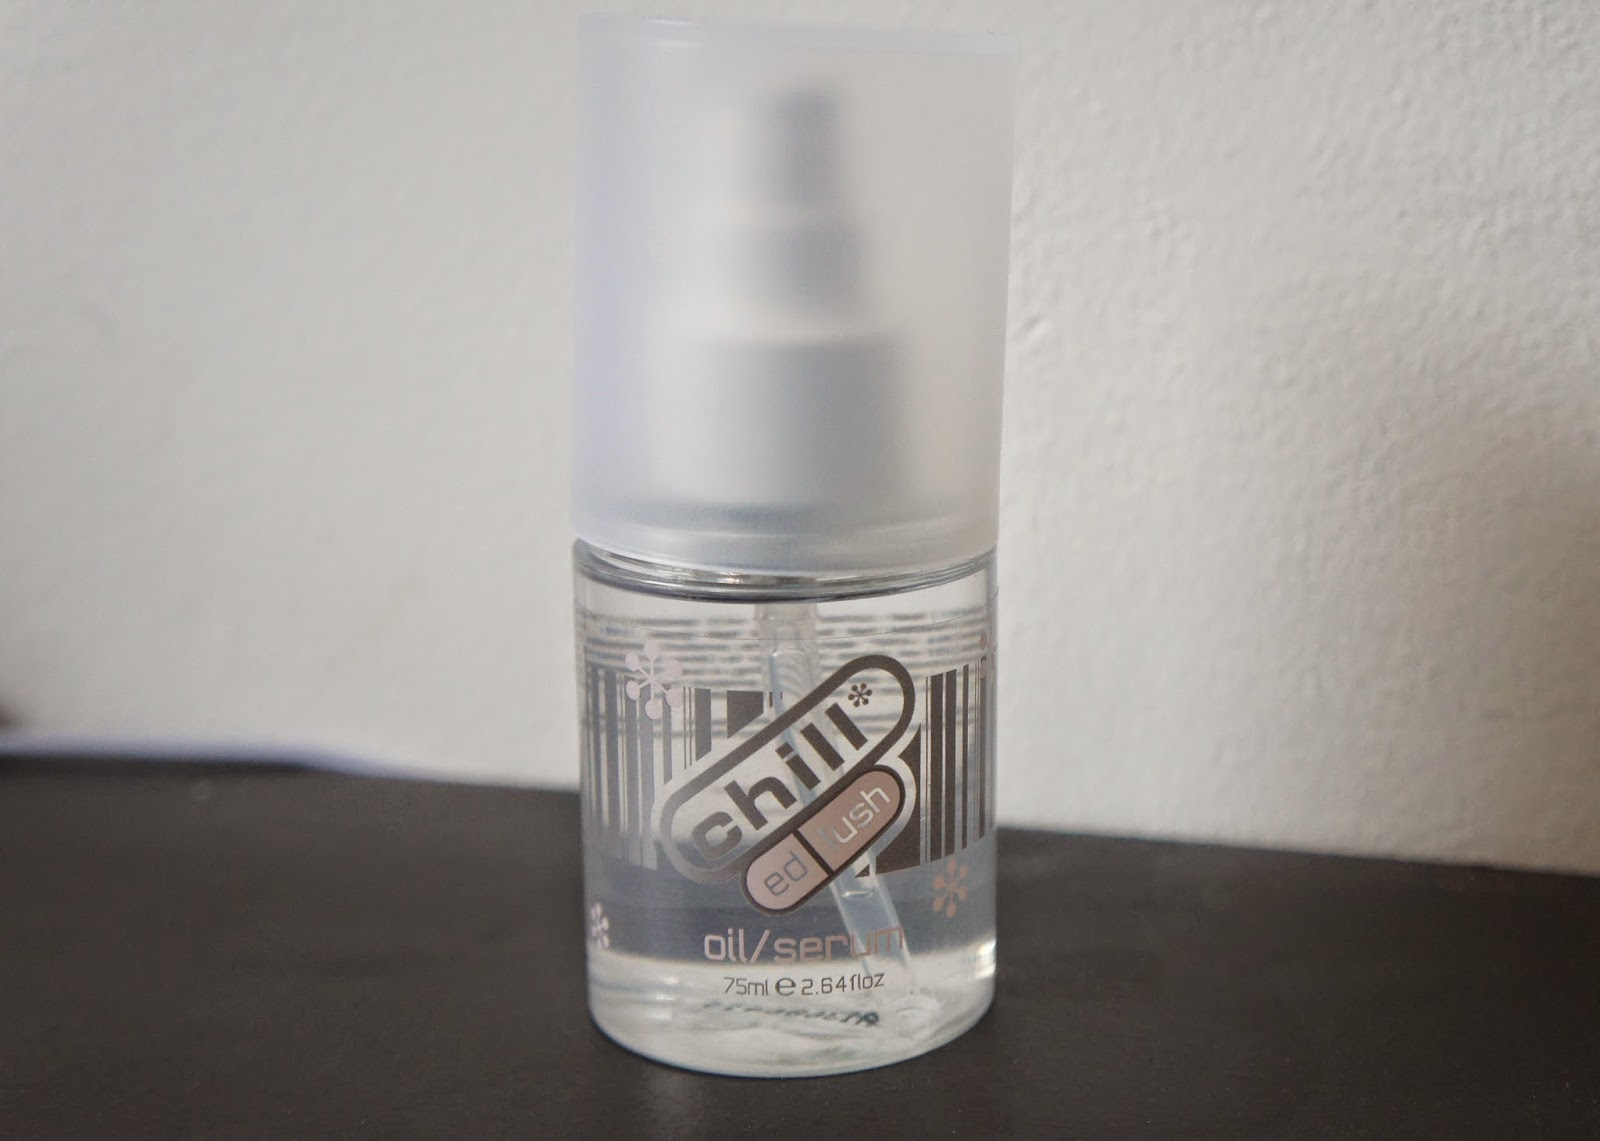 Straightening Natural Hair: Frizz Free & Smooth Results Using Chill- A Smooth Operator Oil Serum by Ed Lush